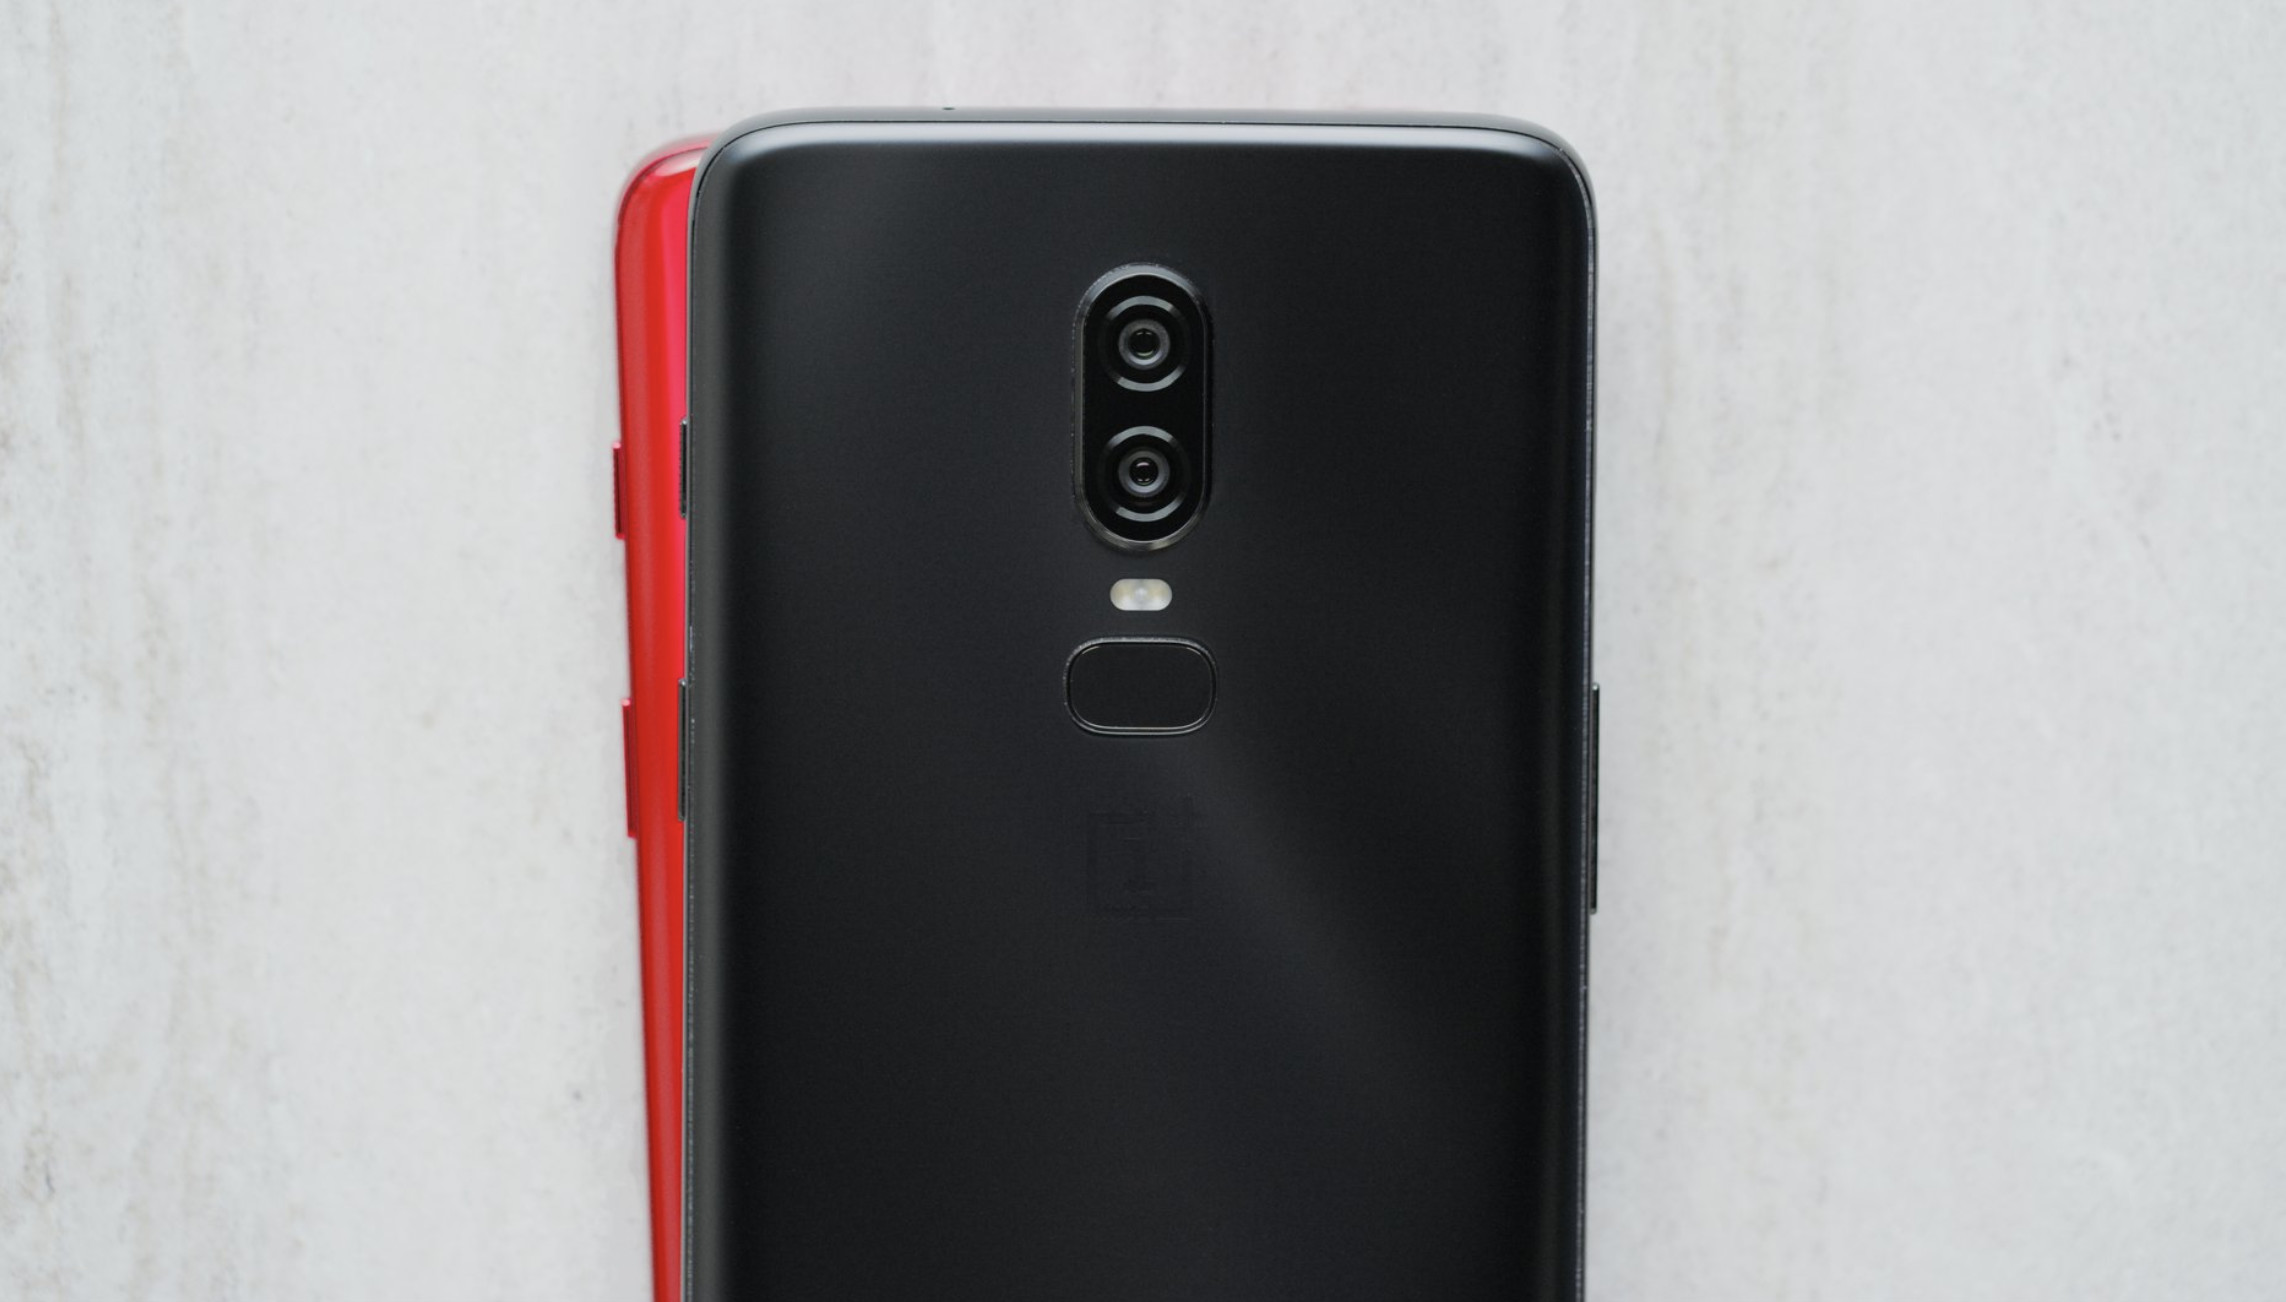 Here's the OnePlus 6 in lovely  new Red Color